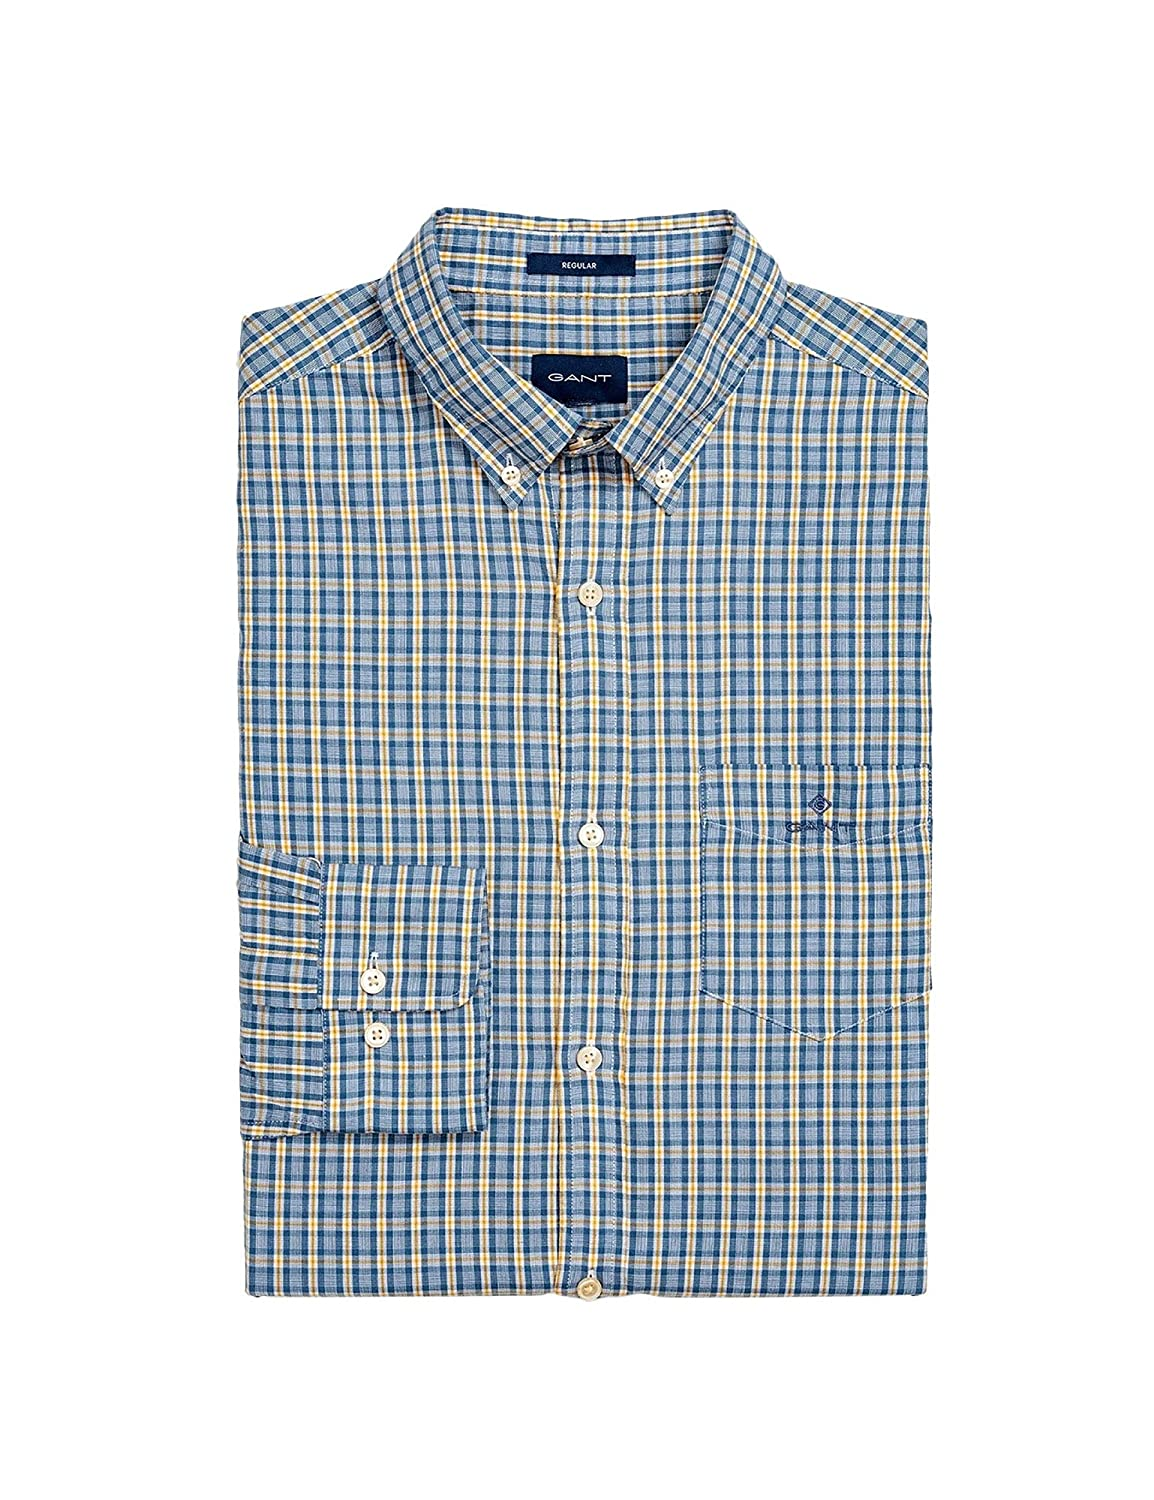 710 Ivy or M Gant Hommes's Check Regular Fit Oxford Shirt